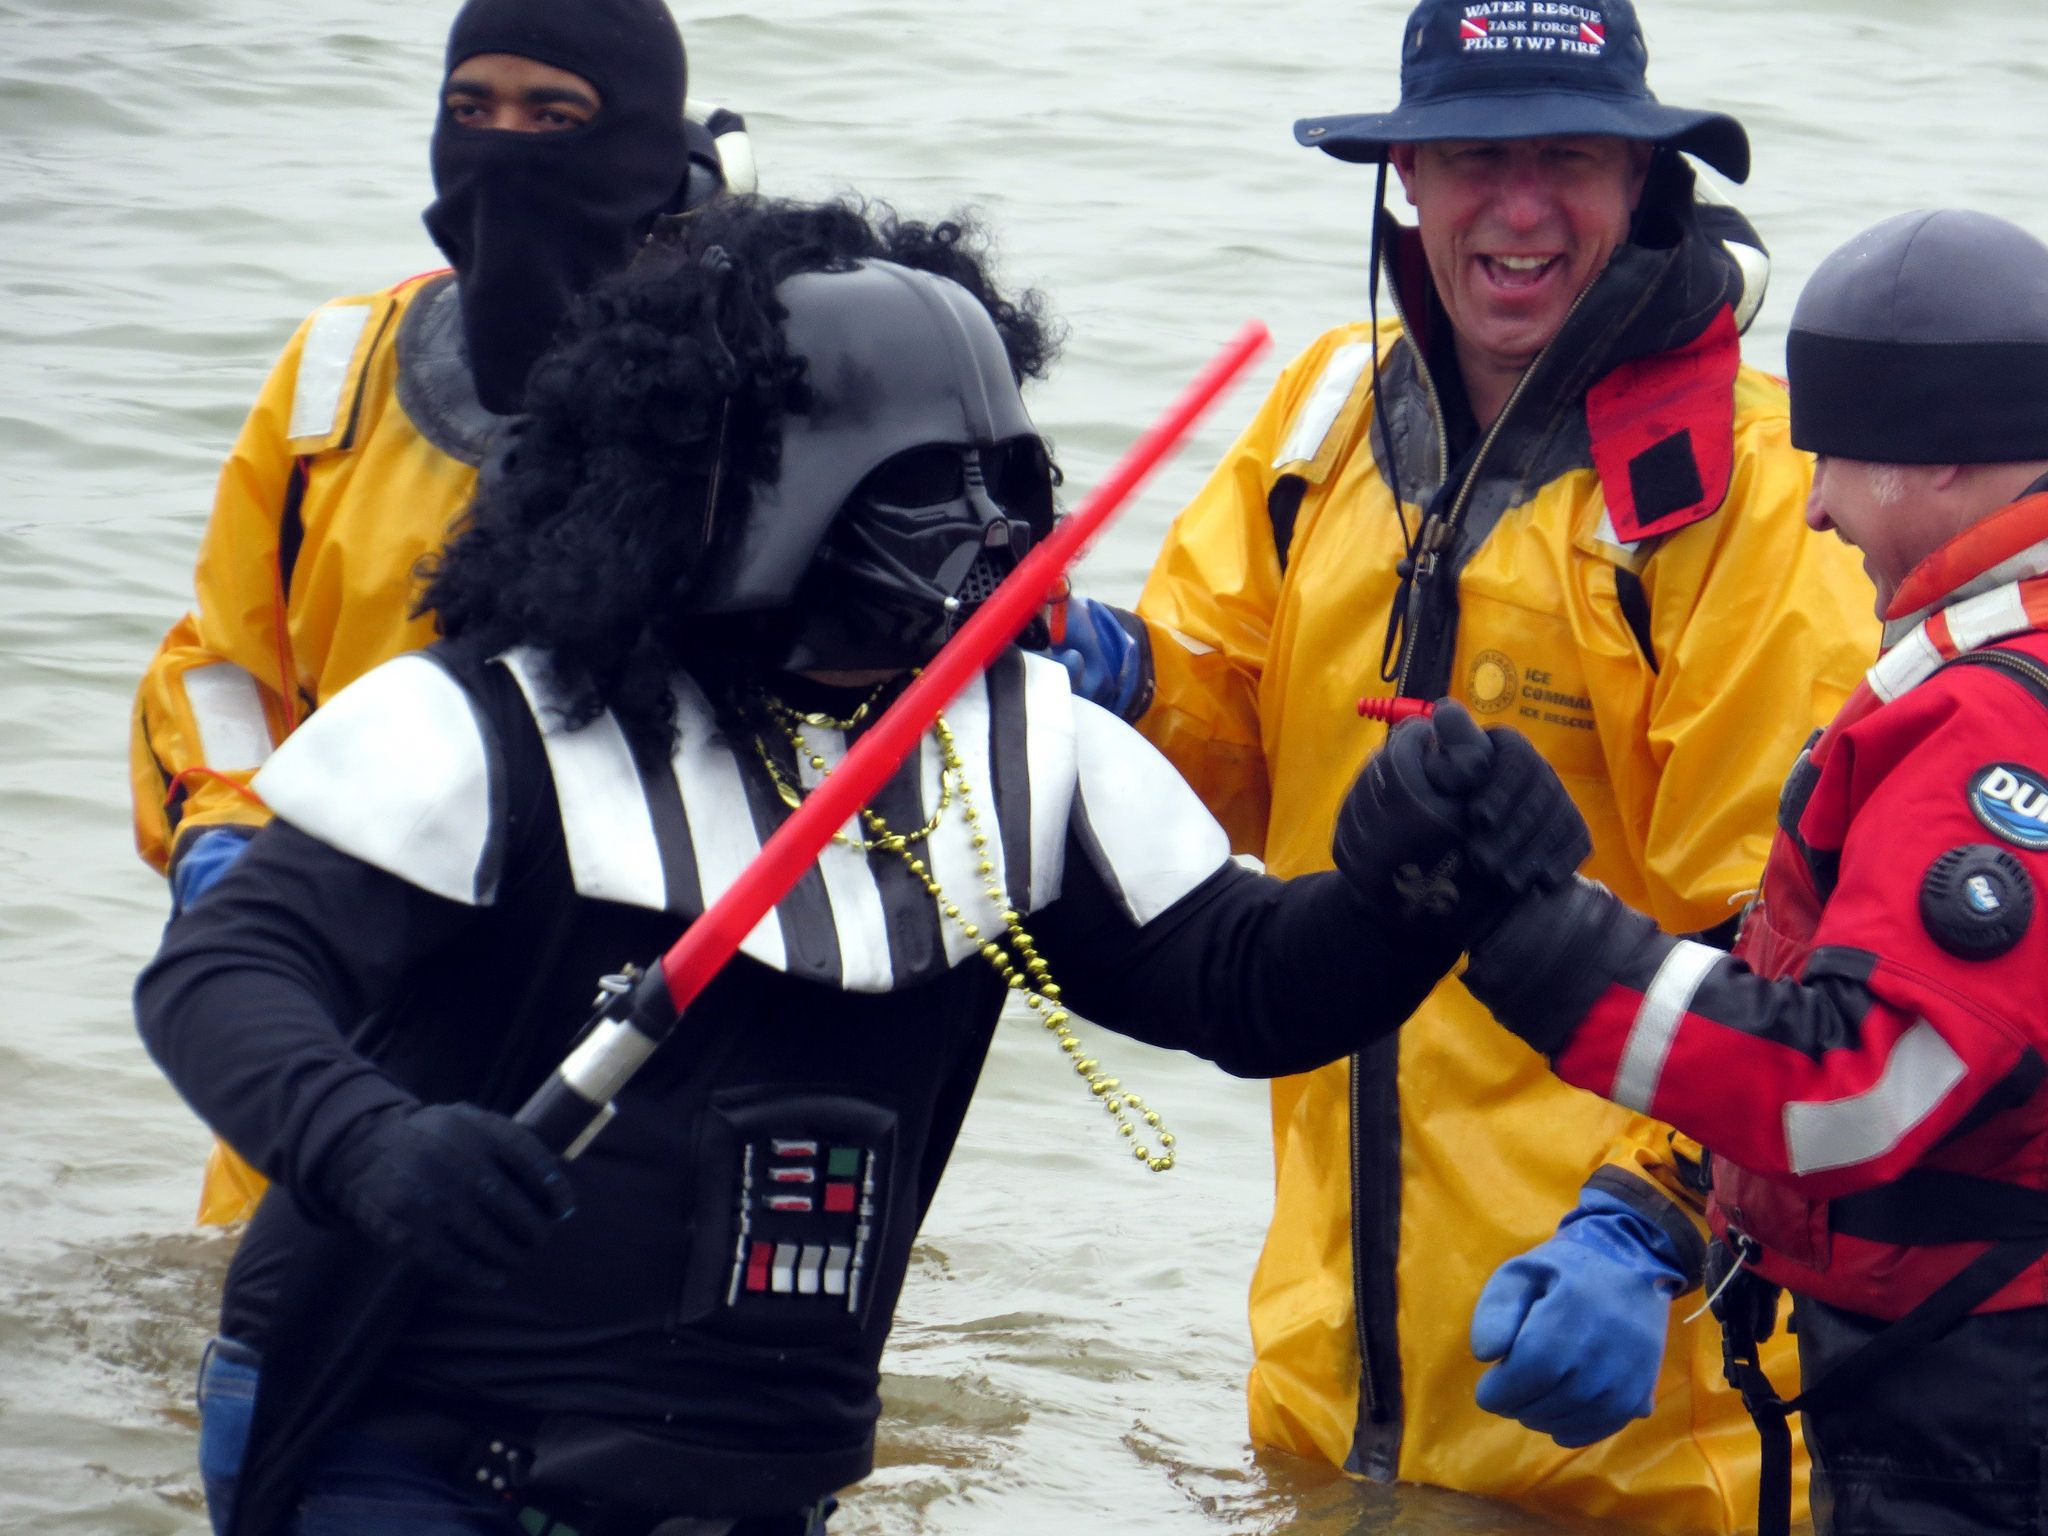 https://flic.kr/p/EmAb7v | When firemen go over to the darkside! | Shaking hands is still a game changer in bonding men even firemen and Star Wars characters doing the Polar Plunge in Eagle Creek Park, Indianapolis.